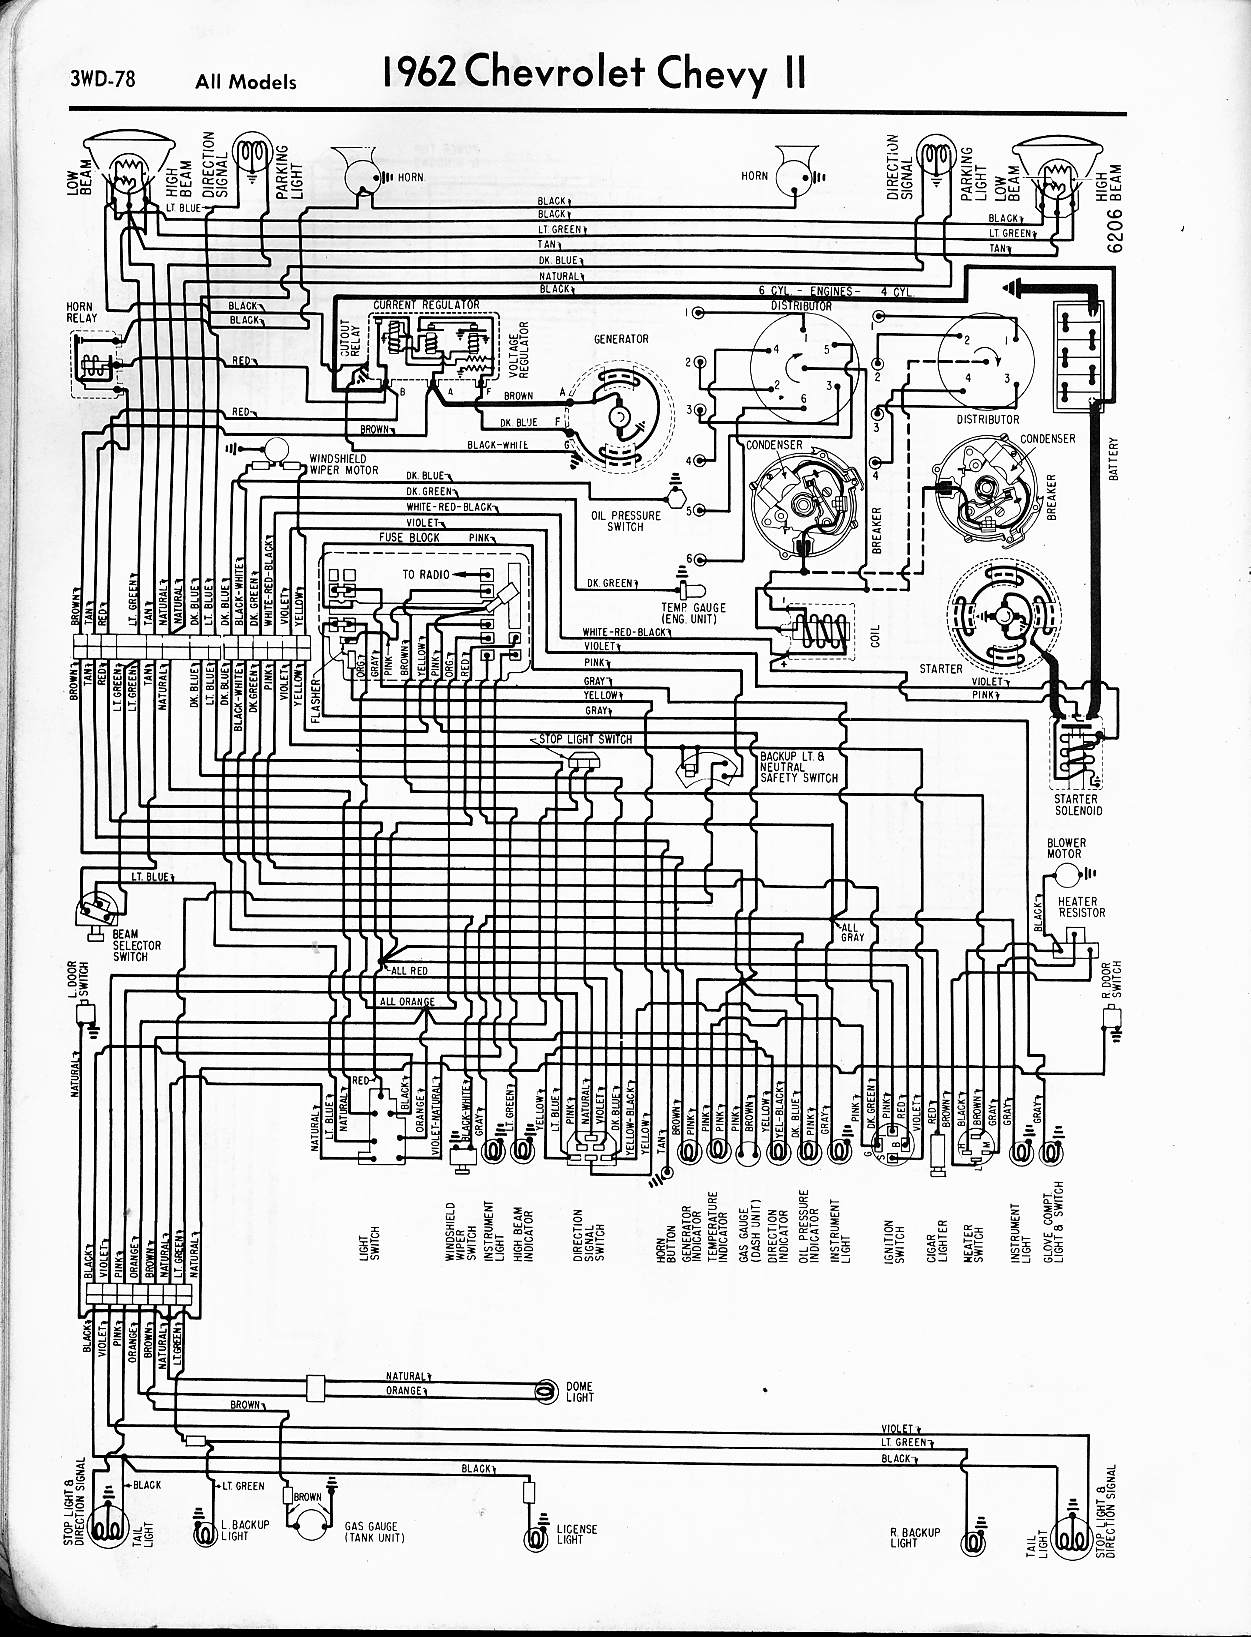 hight resolution of 57 65 chevy wiring diagrams 2008 impala fuse box diagram 1962 chevy ii all models